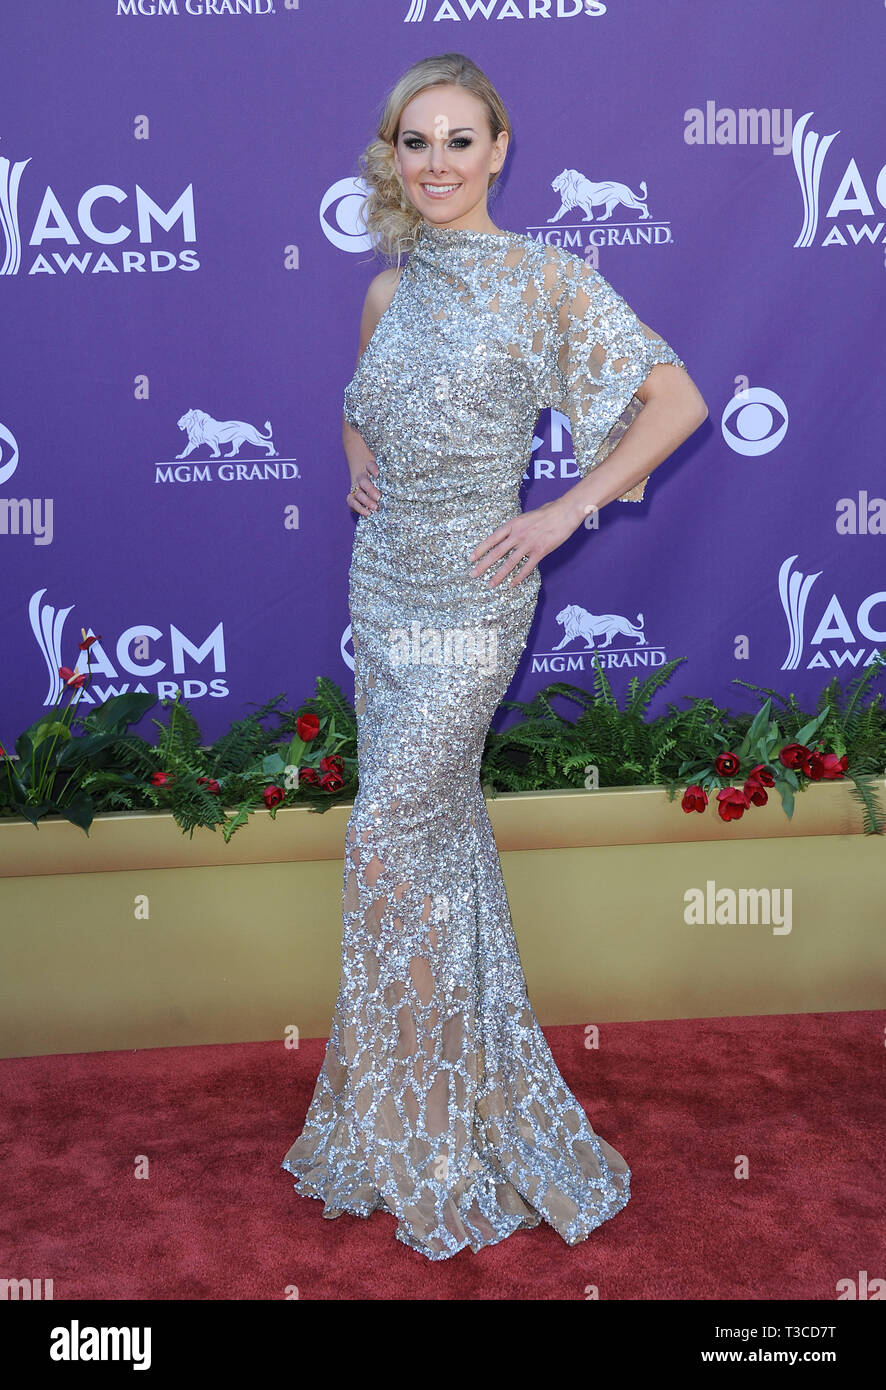 Laura Bell Bundy At The 47th Annual Academy Of Country Music Awards 2012 At The Mgm Grand In Las Vegas Laura Bell Bundy 079 Event In Hollywood Life California Red Carpet Event